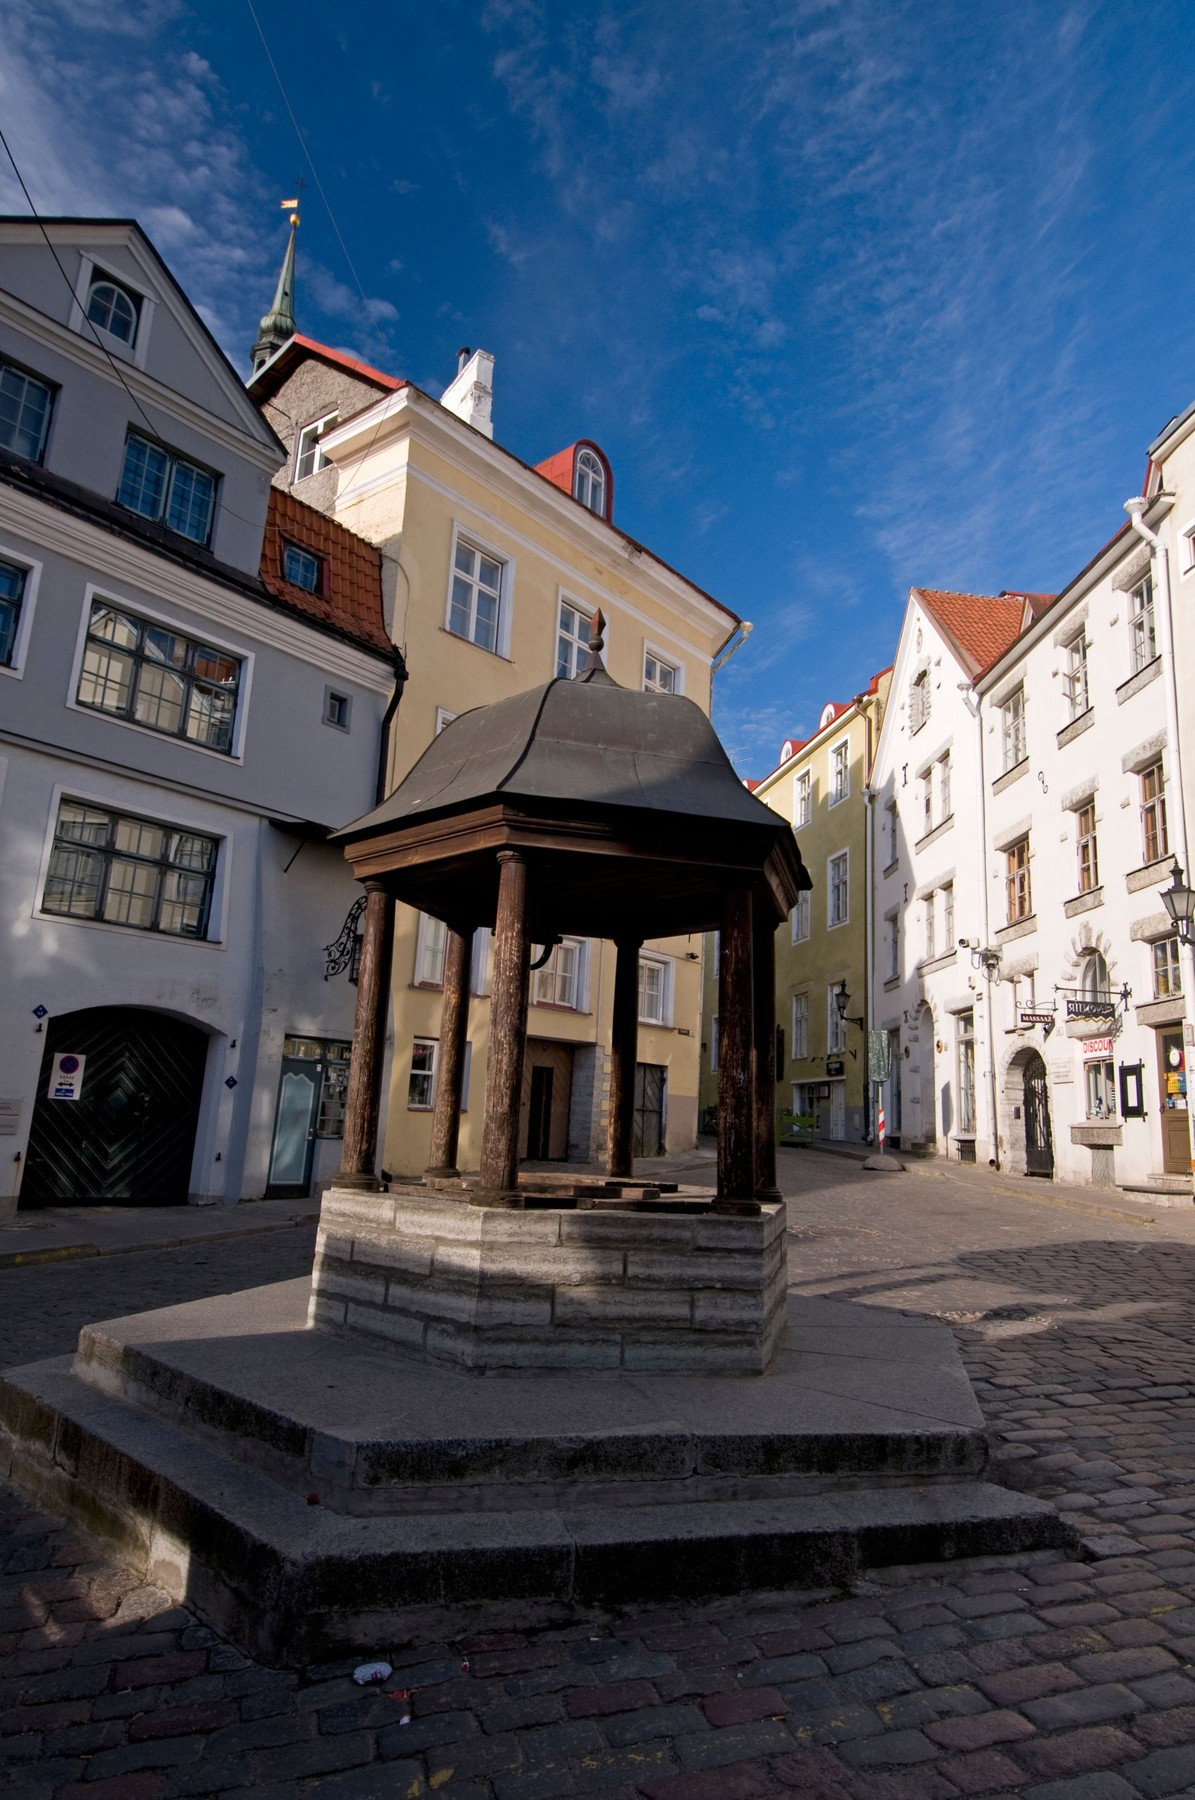 .A drinking well, known as the Cat's Well on the corner of Rataskaevu and Dunkri in the Old Town of Tallinn,Estonia,Baltic States  The well was a main sources of water for the Tallinn residents in medieval times. Stray cats were rounded up and tossed, sometimes live, down the shaft. This practice was so common that the locals started calling this watering hole,Cat's Well, Image: 162117328, License: Rights-managed, Restrictions: , Model Release: no, Credit line: richard sowersby / Alamy / Alamy / Profimedia